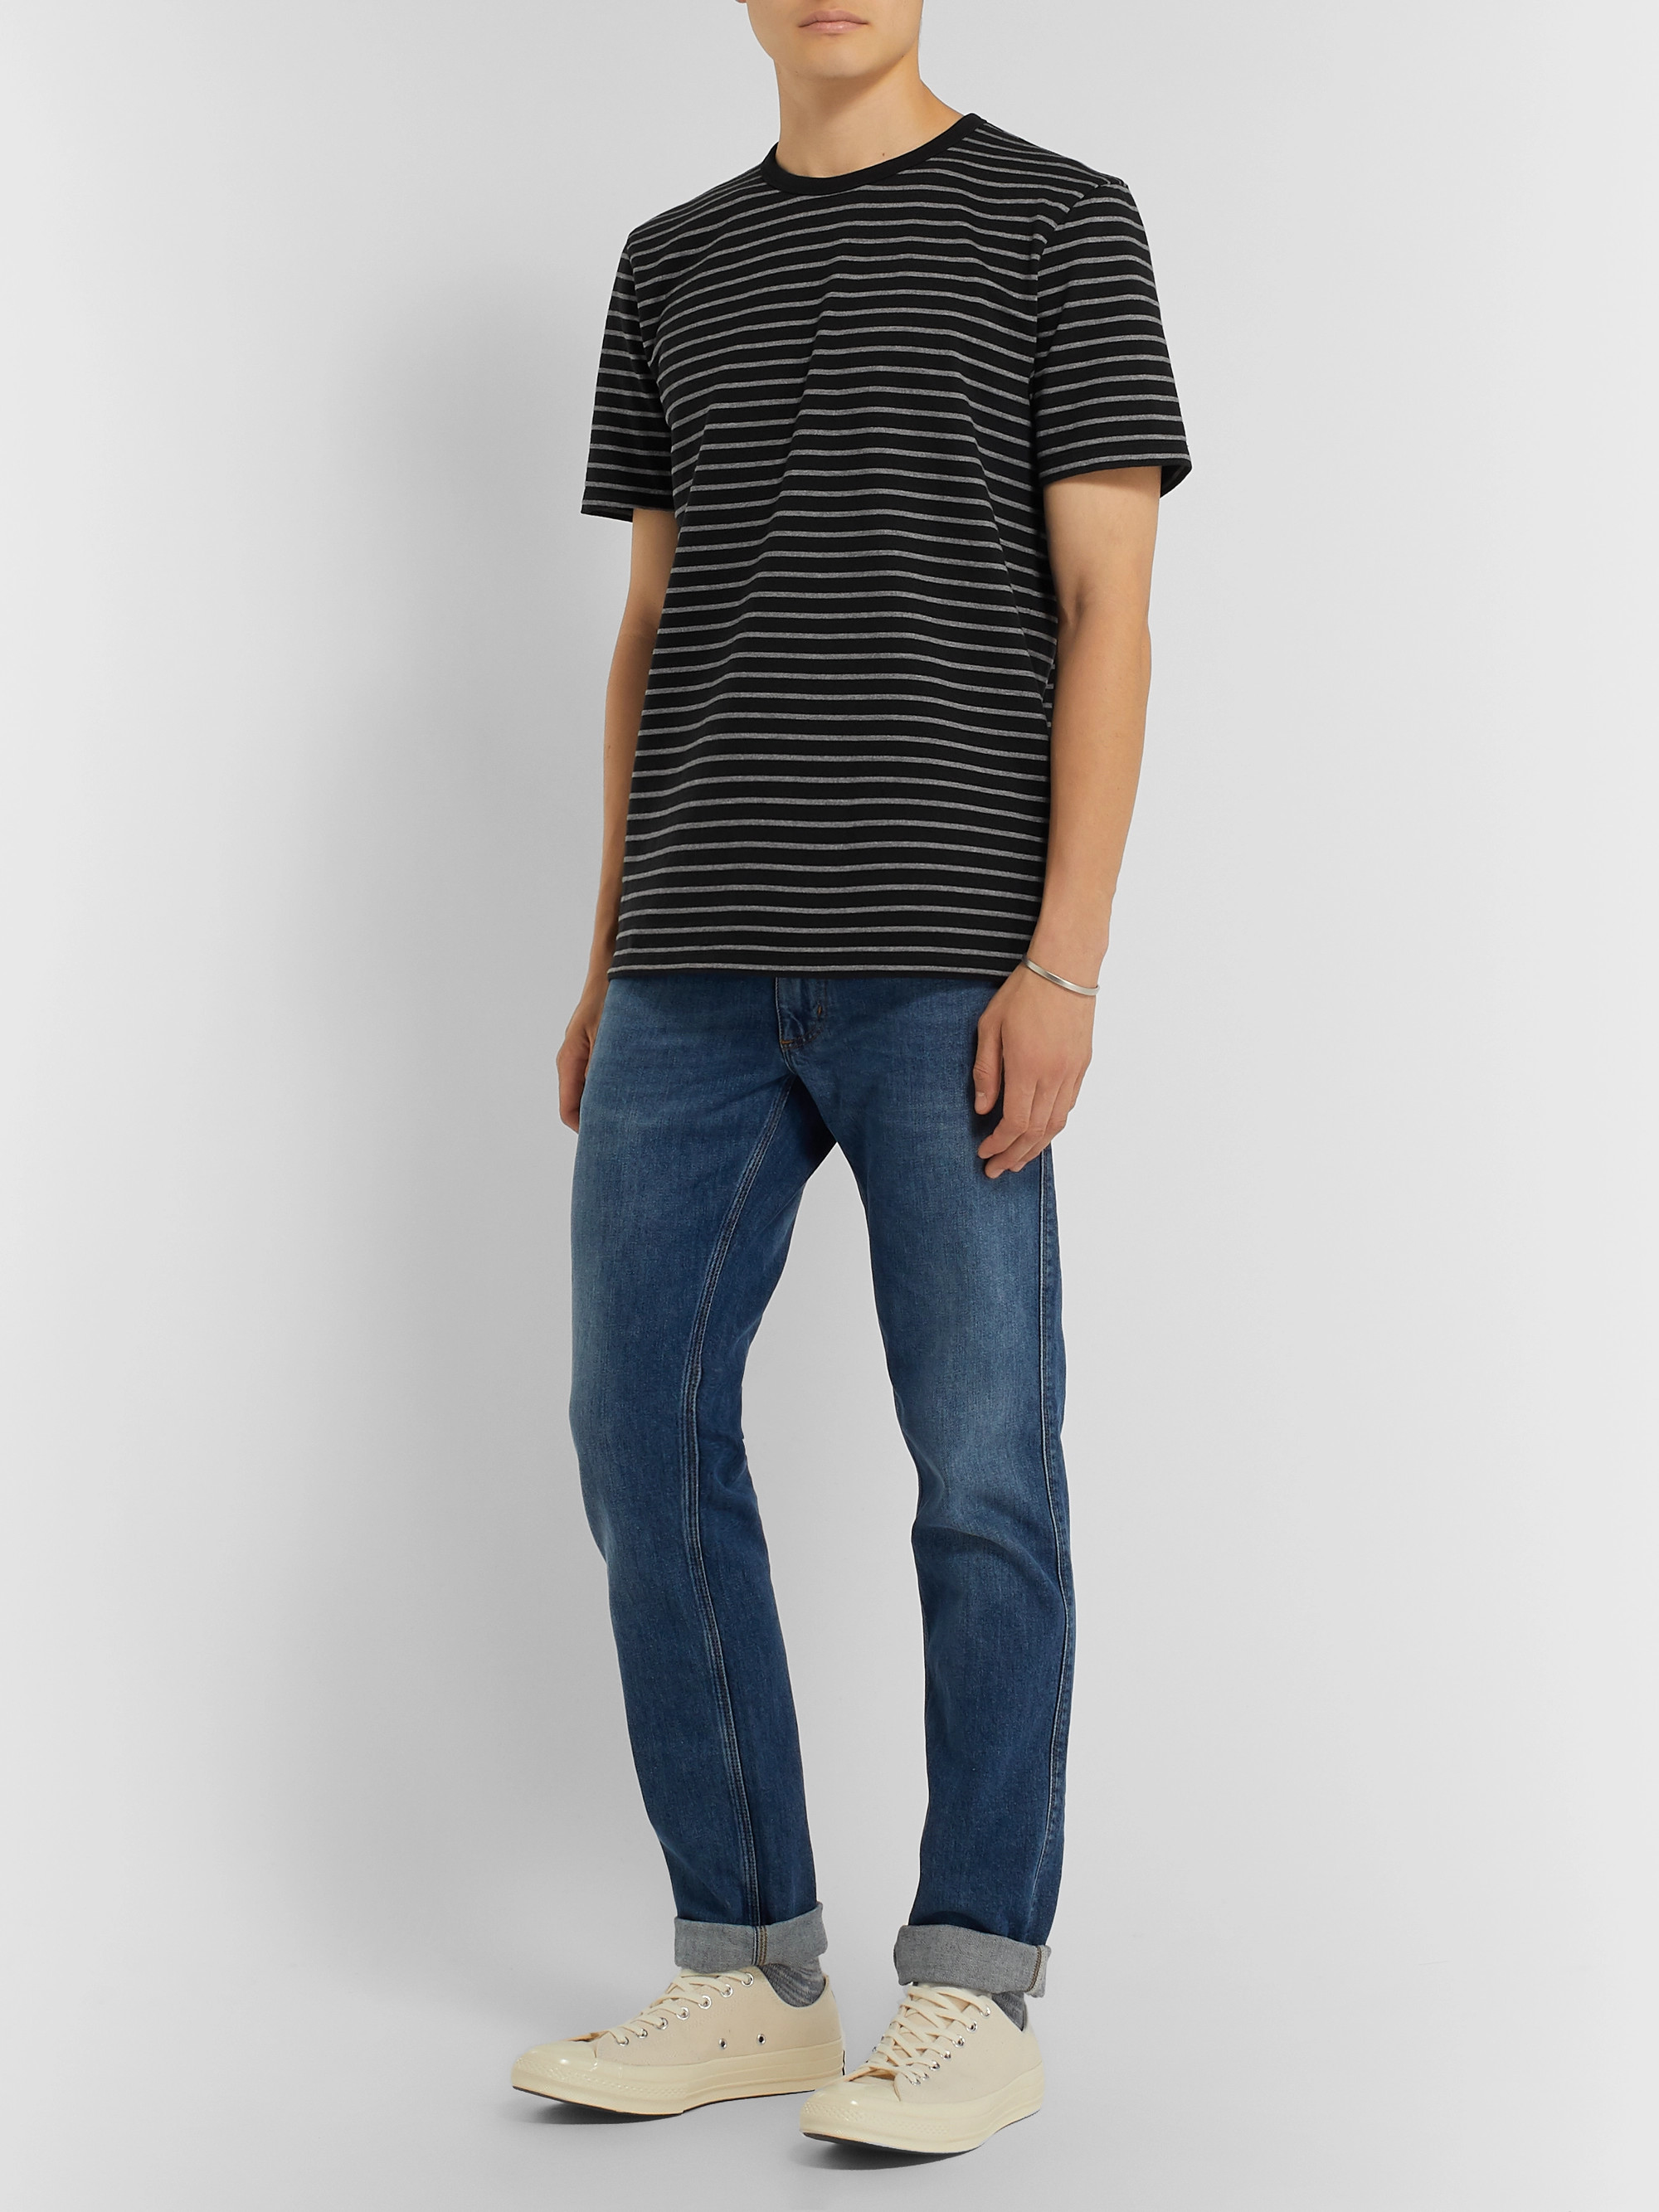 FRAME Striped Cotton-Jersey T-Shirt